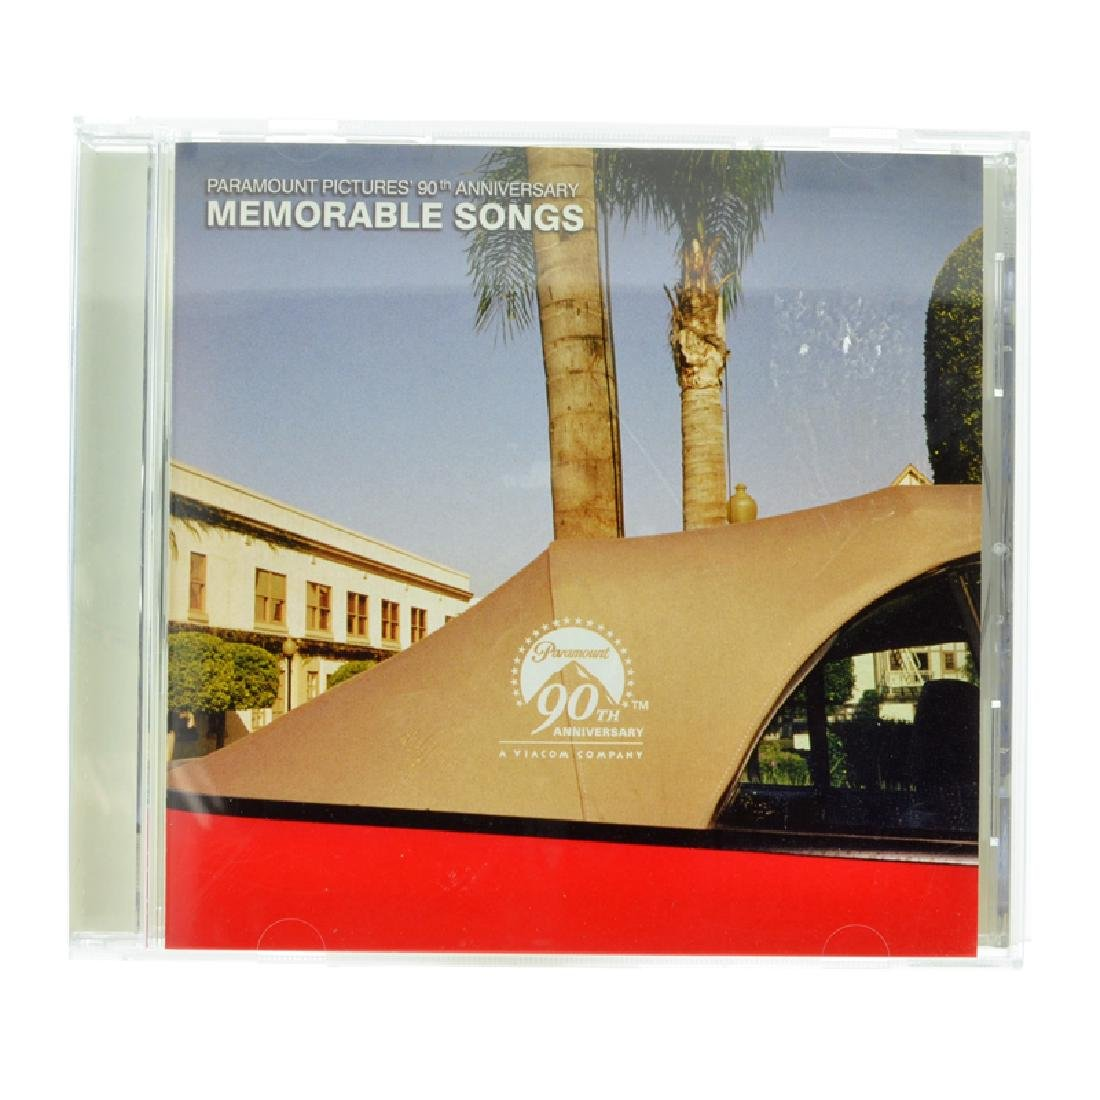 Paramount Pictures 90th Anniversary Memorable Songs CDs